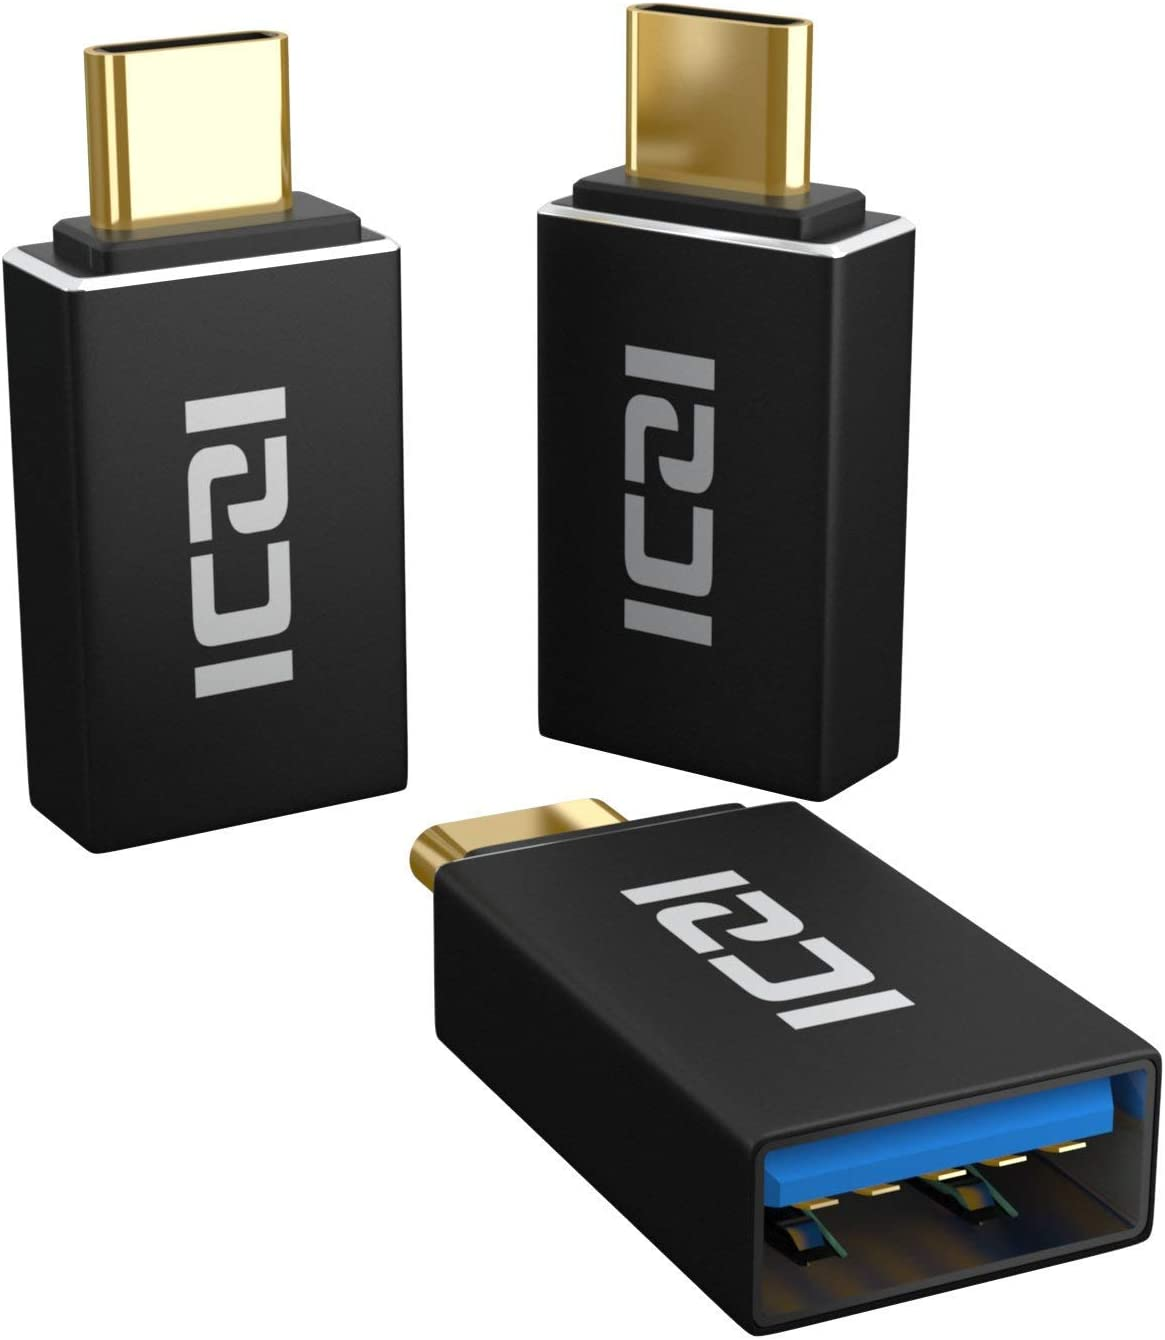 Mini USB C to USB Adapter, ICZI OTG Gold Plated Thunderbolt 3 to USB3.0 Converter for MacBook, Samsung Galaxy S8 S9 and Type C Devices - 3 Pack